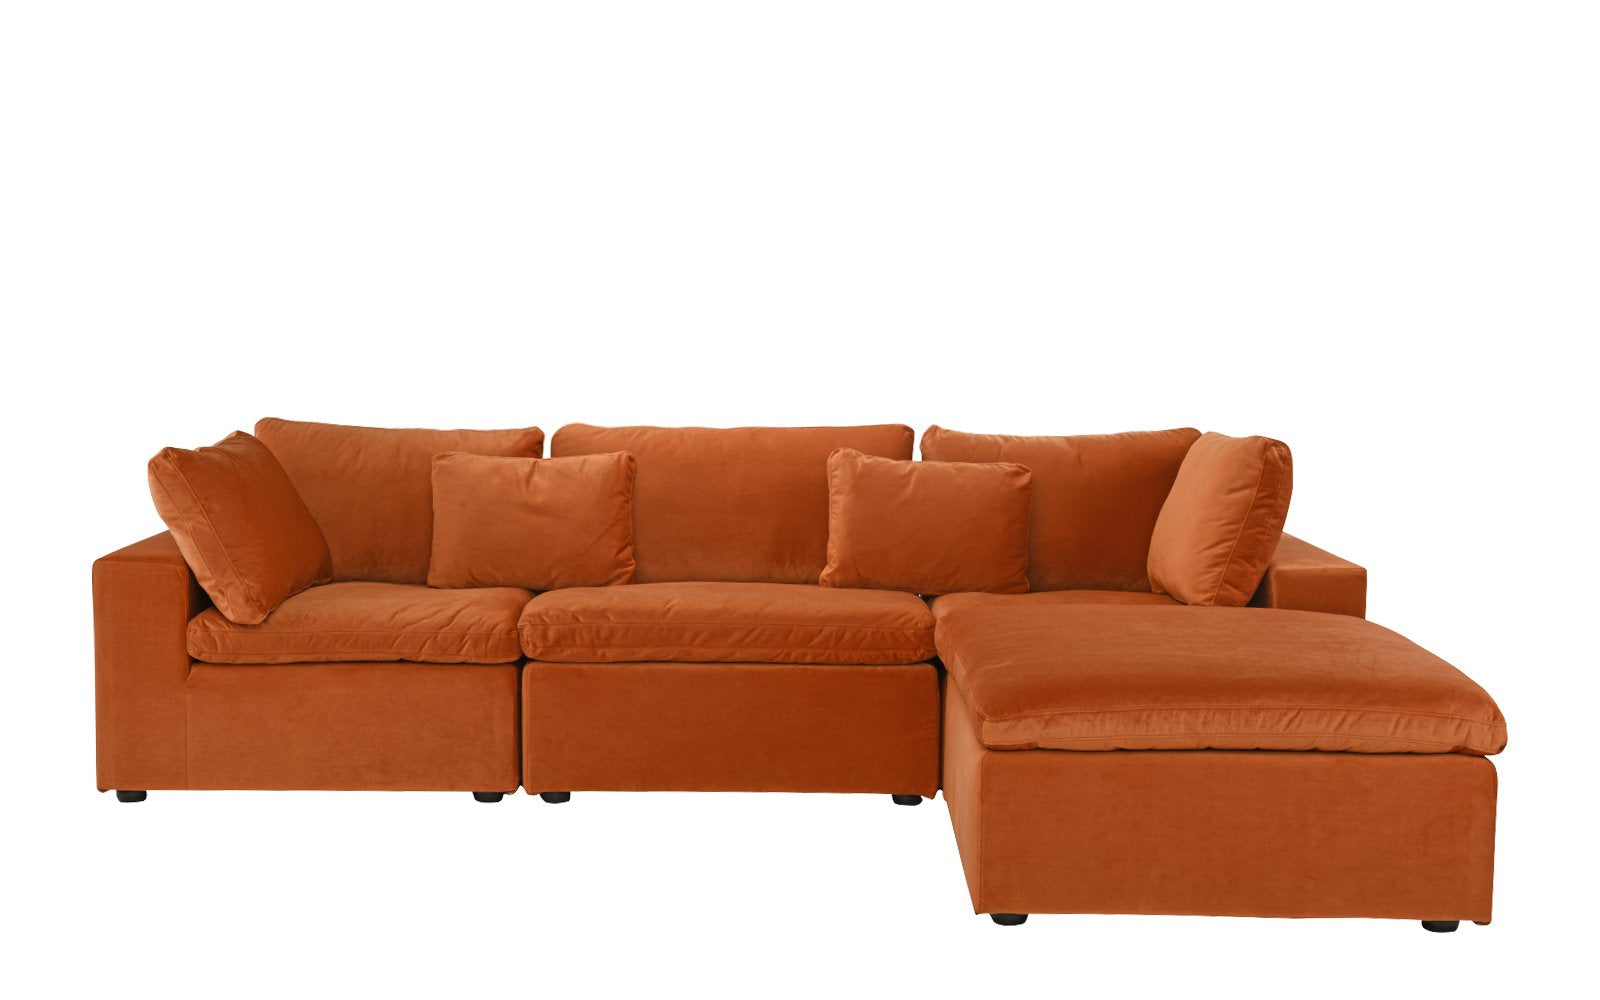 Superieur Fitz Contemporary Low Profile Velvet Lounge Sofa With Chaise